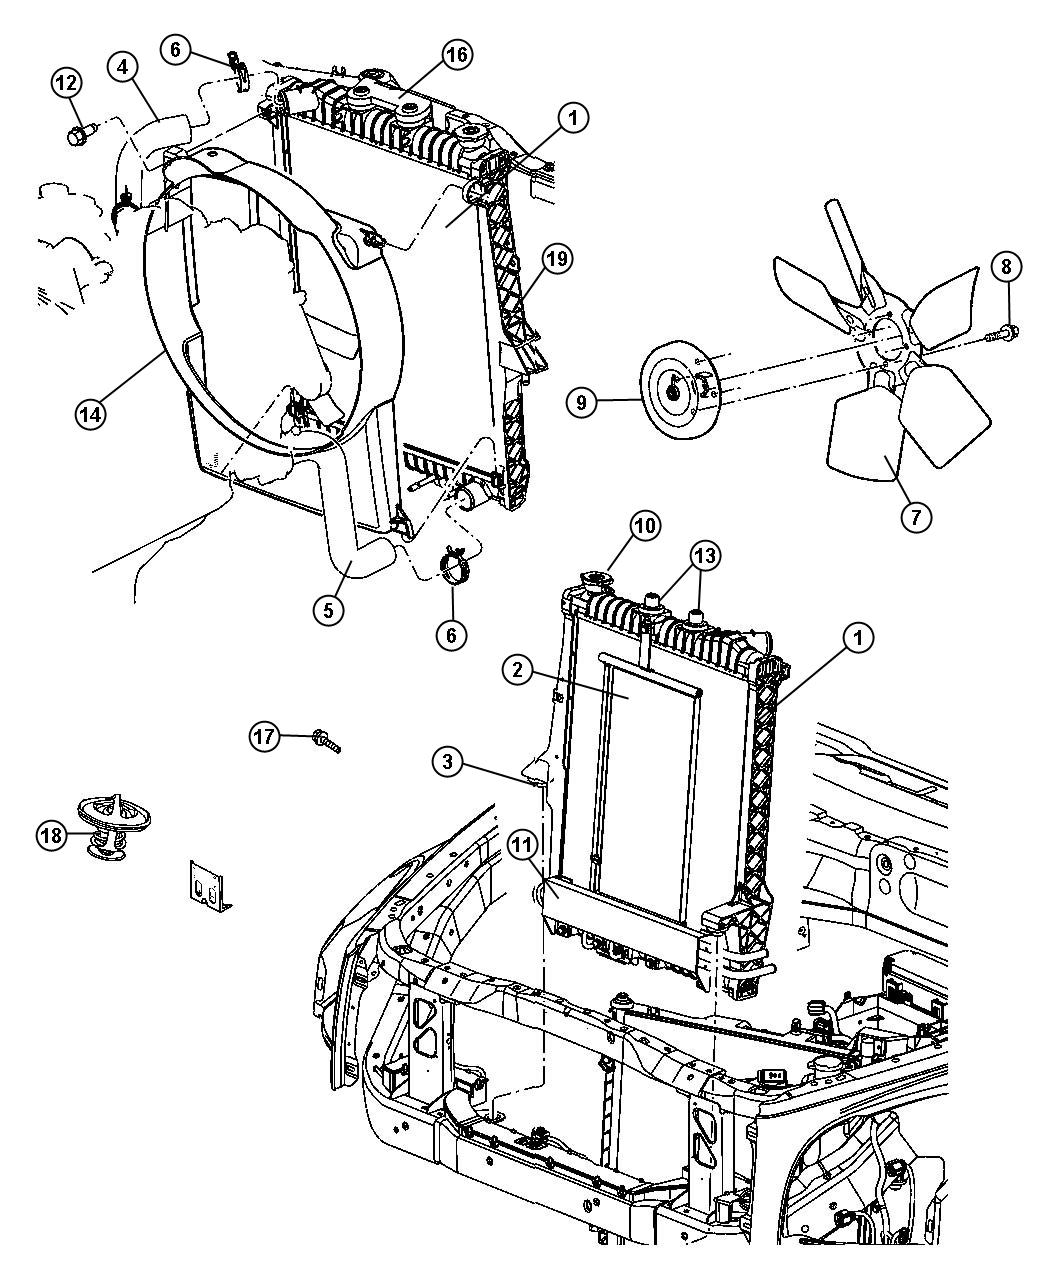 35 2001 dodge durango cooling system diagram